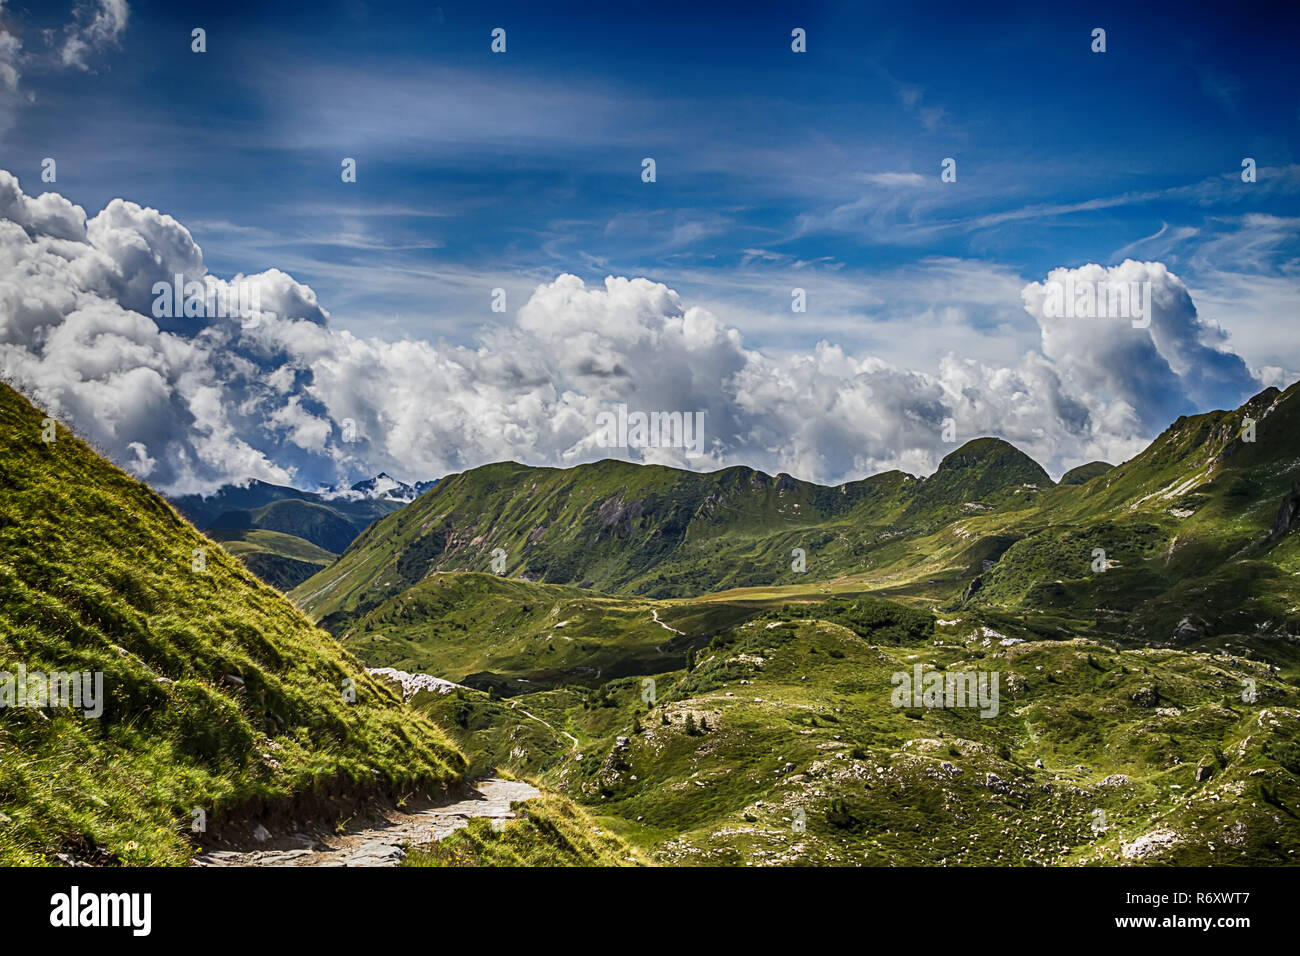 beautyfull mountain landscape. alps montains in bagolino,province of brescia,italy. - Stock Image